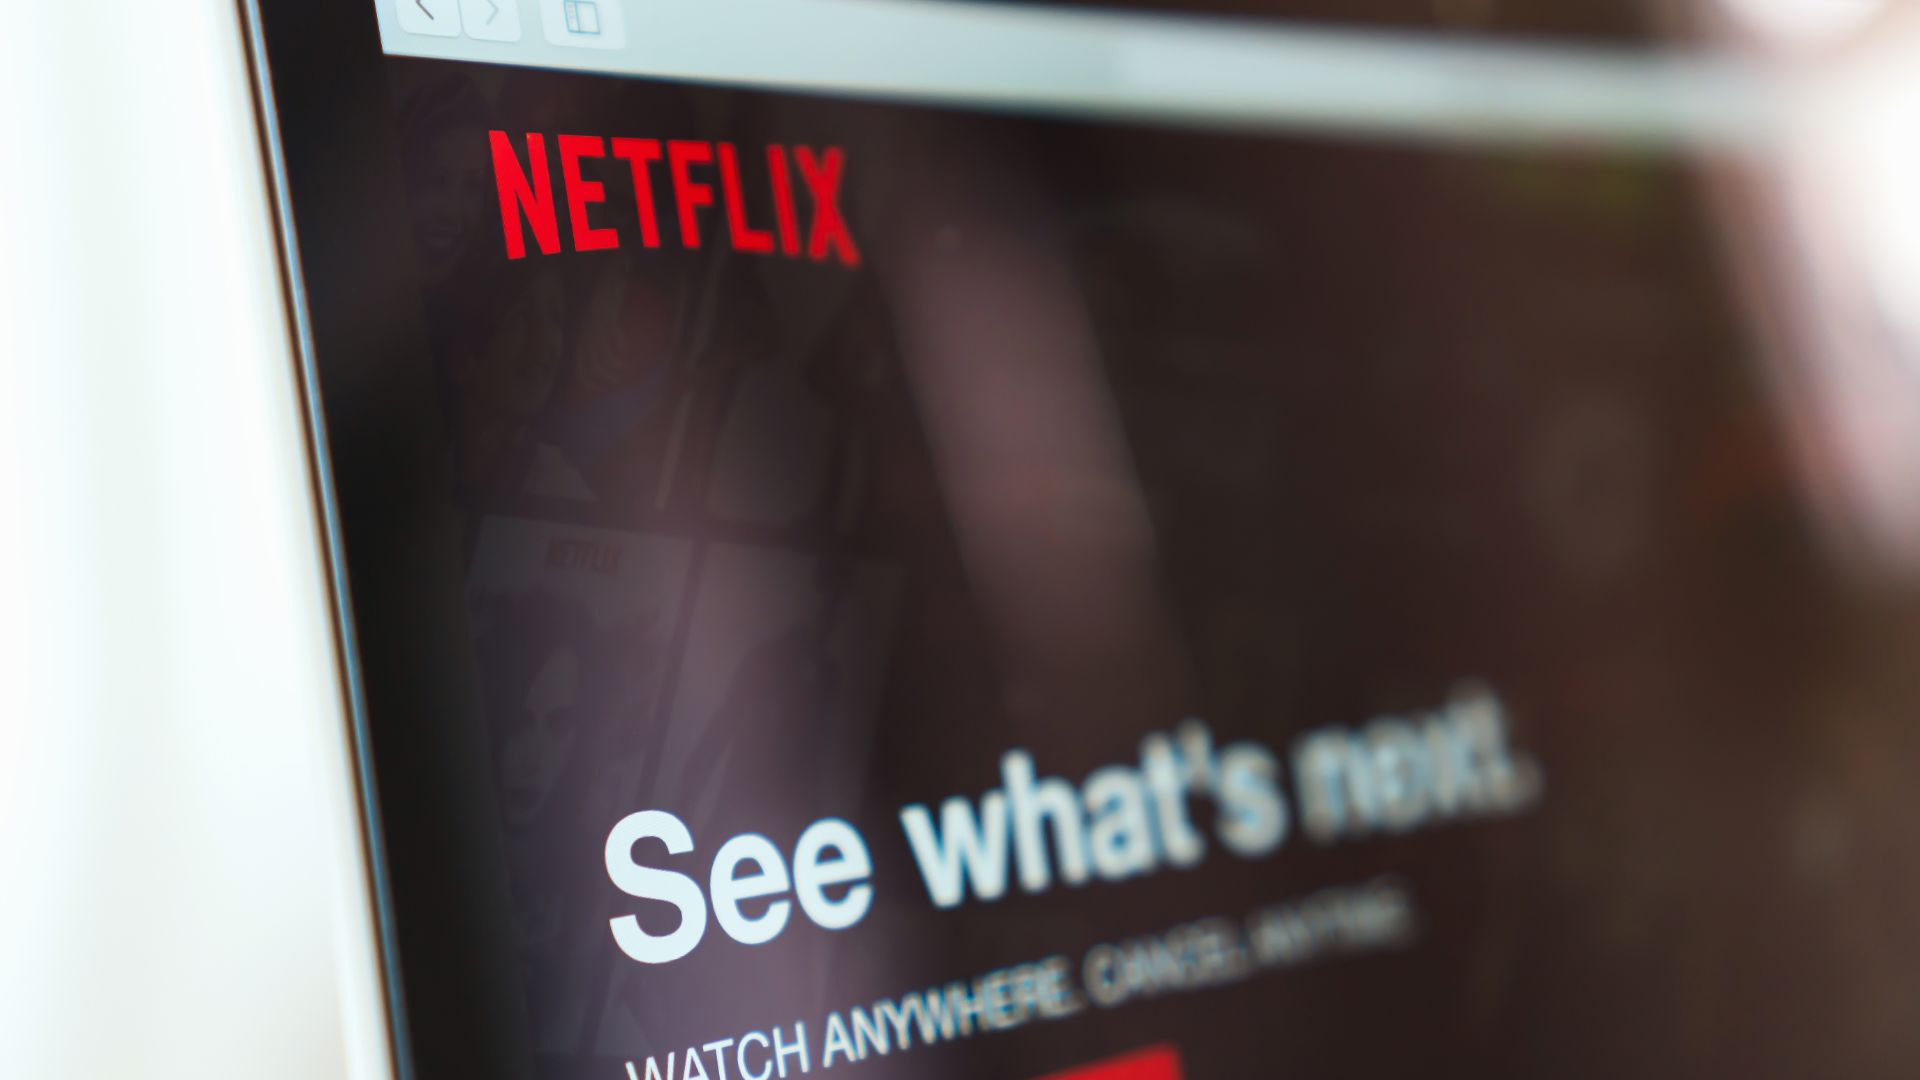 Two-hour Netflix binge worse for emissions than 15 miles of driving